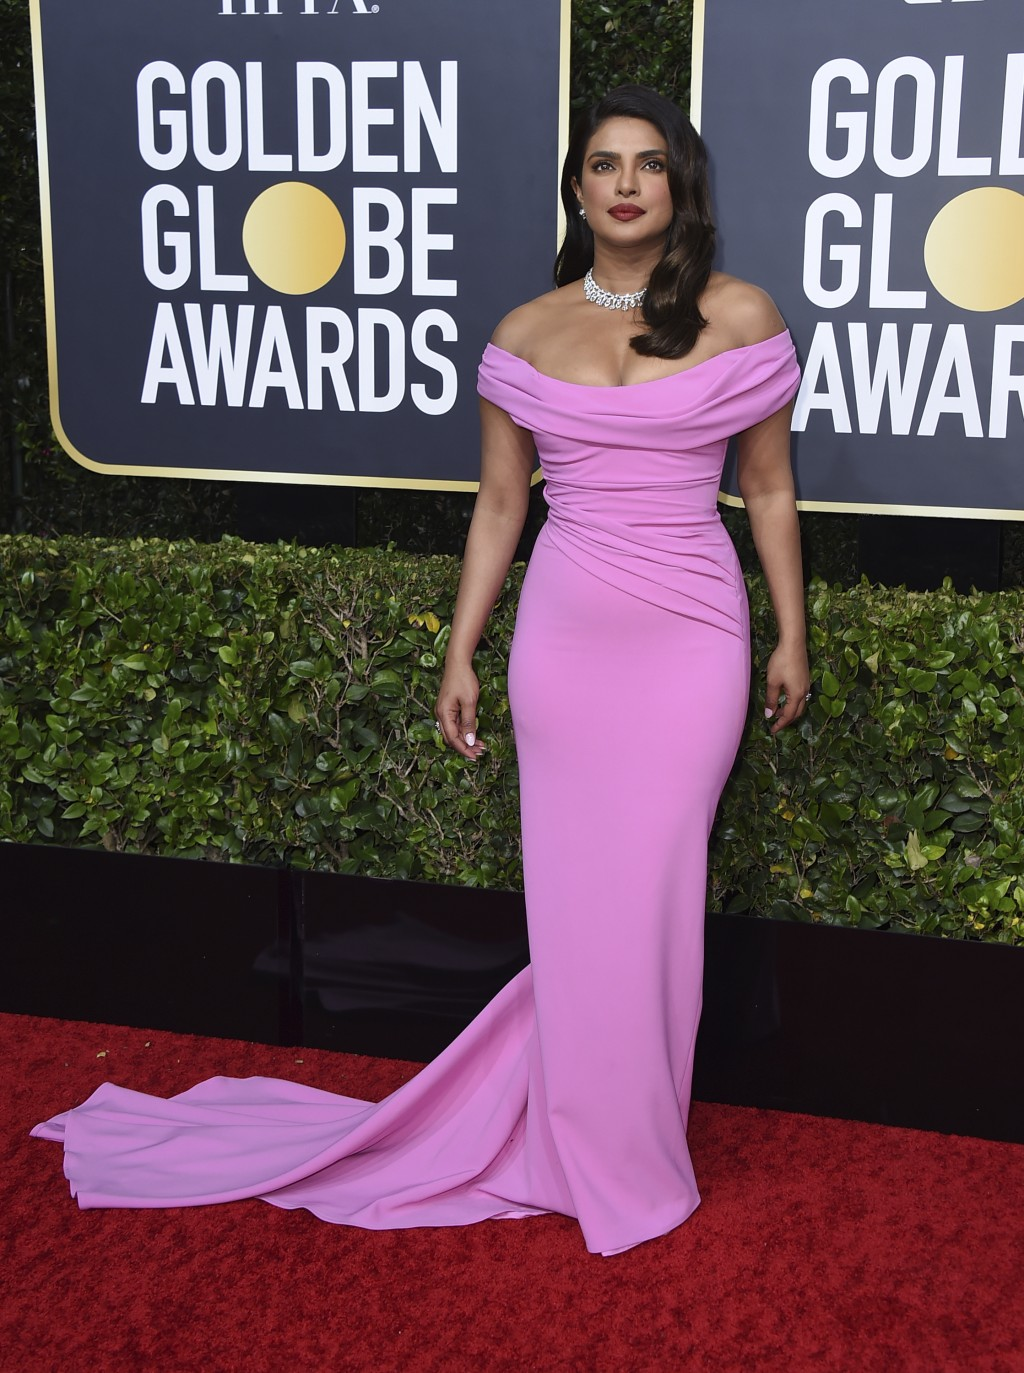 Priyanka Chopra arrives at the 77th annual Golden Globe Awards at the Beverly Hilton Hotel on Sunday, Jan. 5, 2020, in Beverly Hills, Calif. (Photo by...